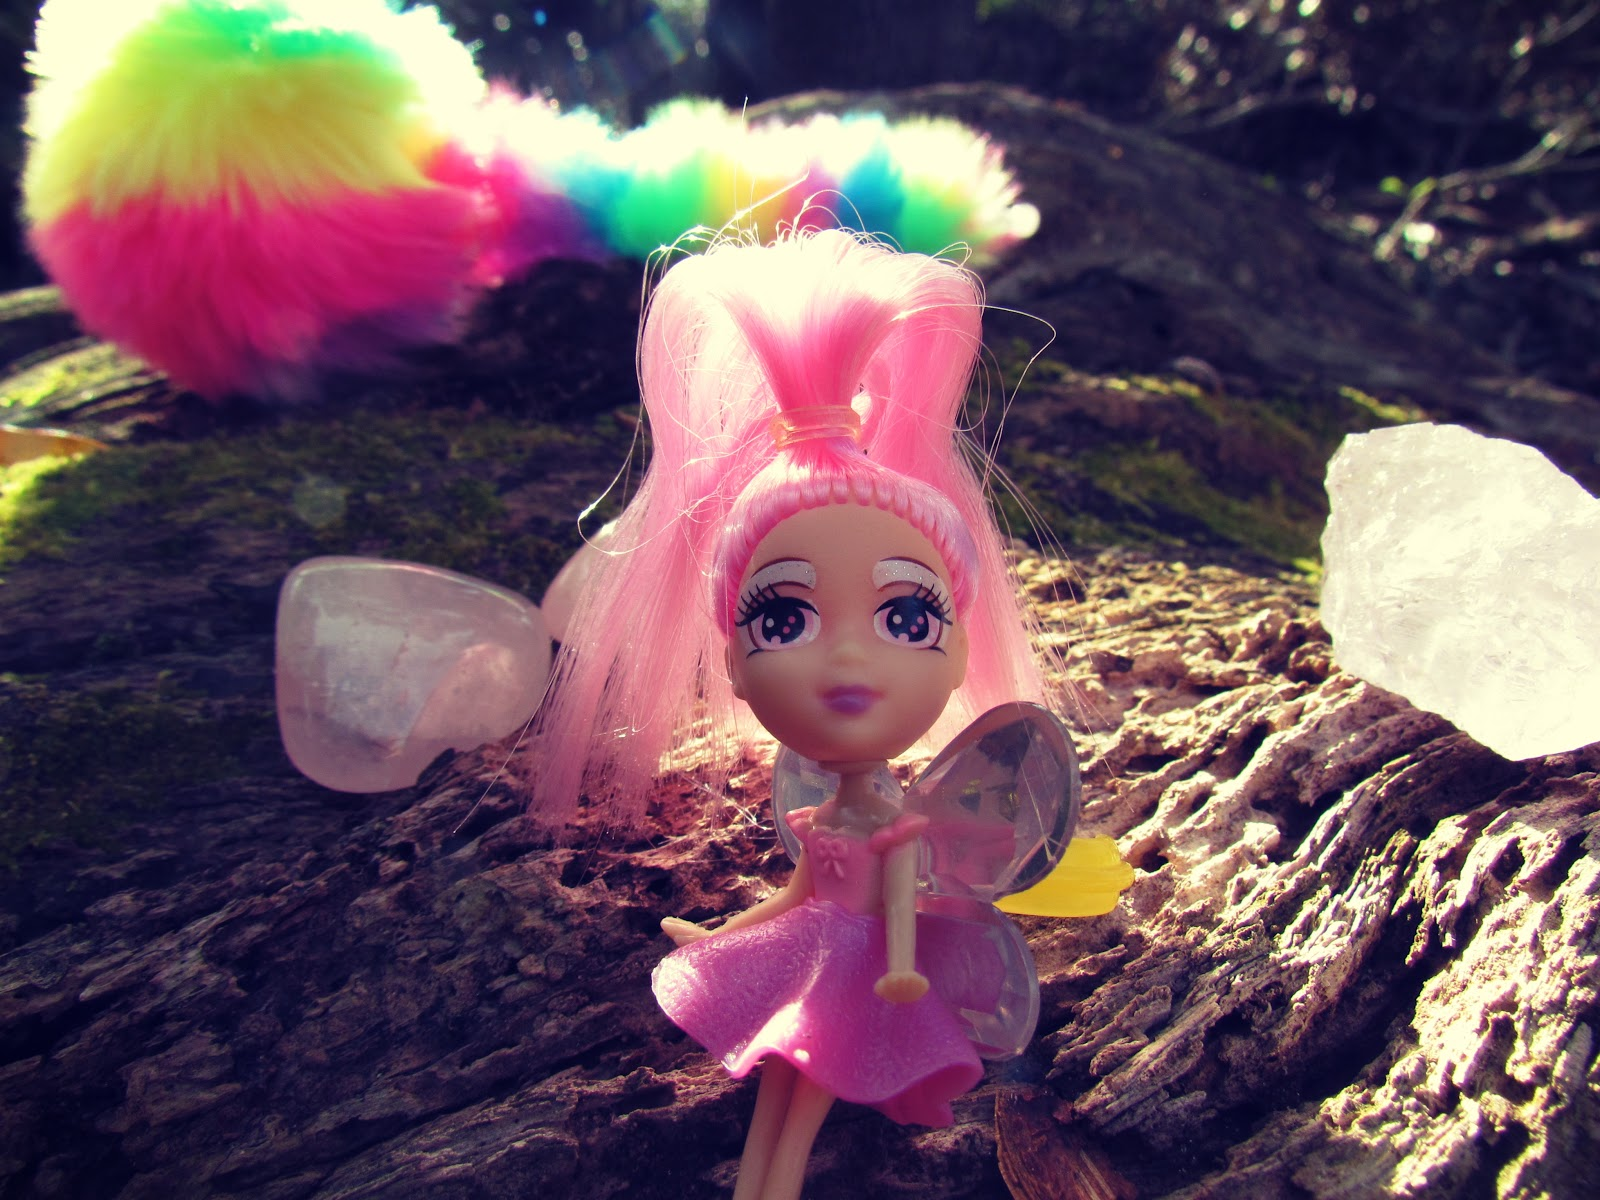 A Pink Fairy Doll Ring Dollar Store Find Sitting on a Tree Stump With Fuzzy Novelty Pens in Nature